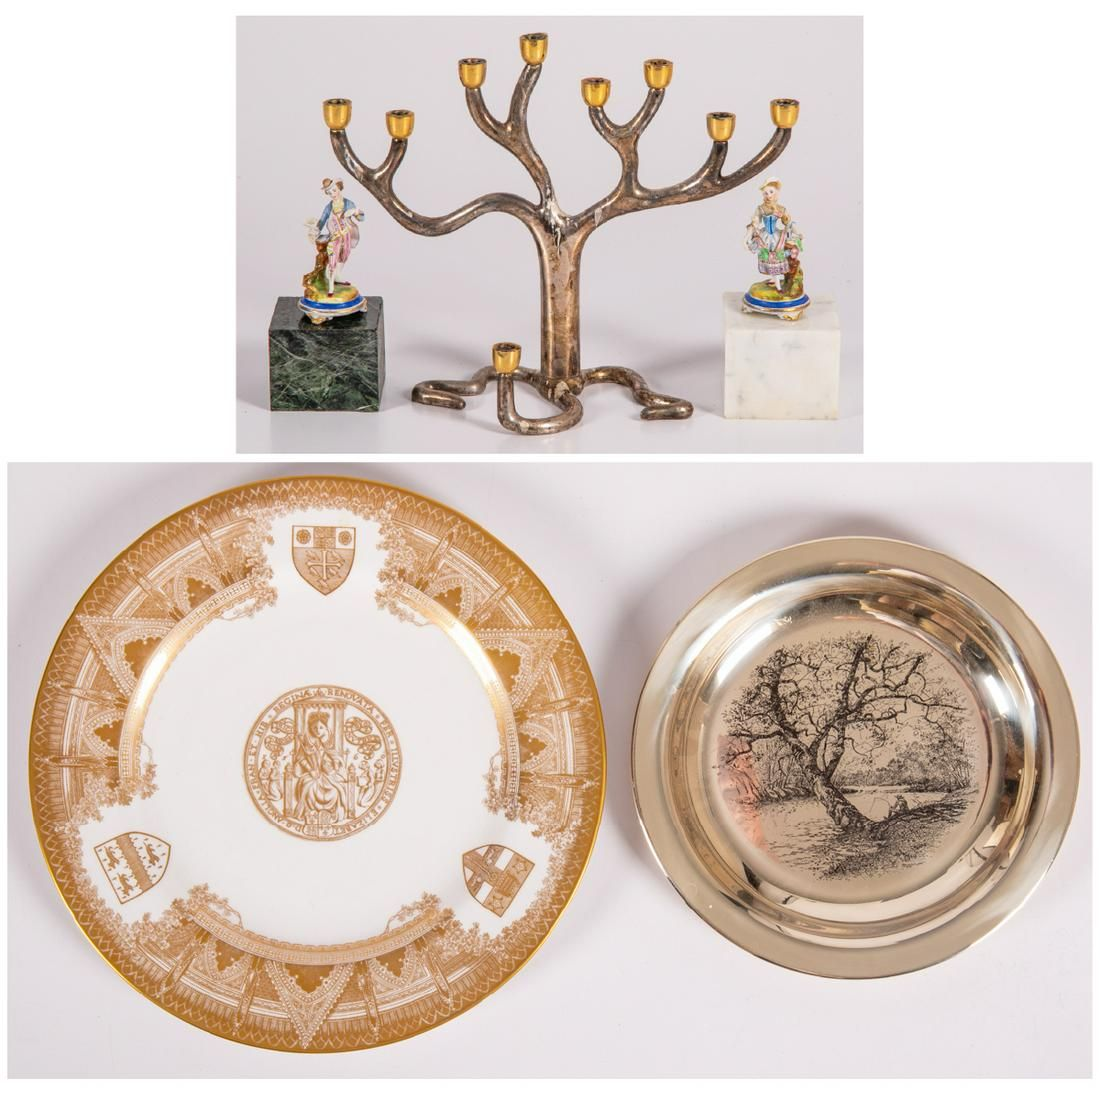 A Miscellaneous Collection of Decorative Items, 20th